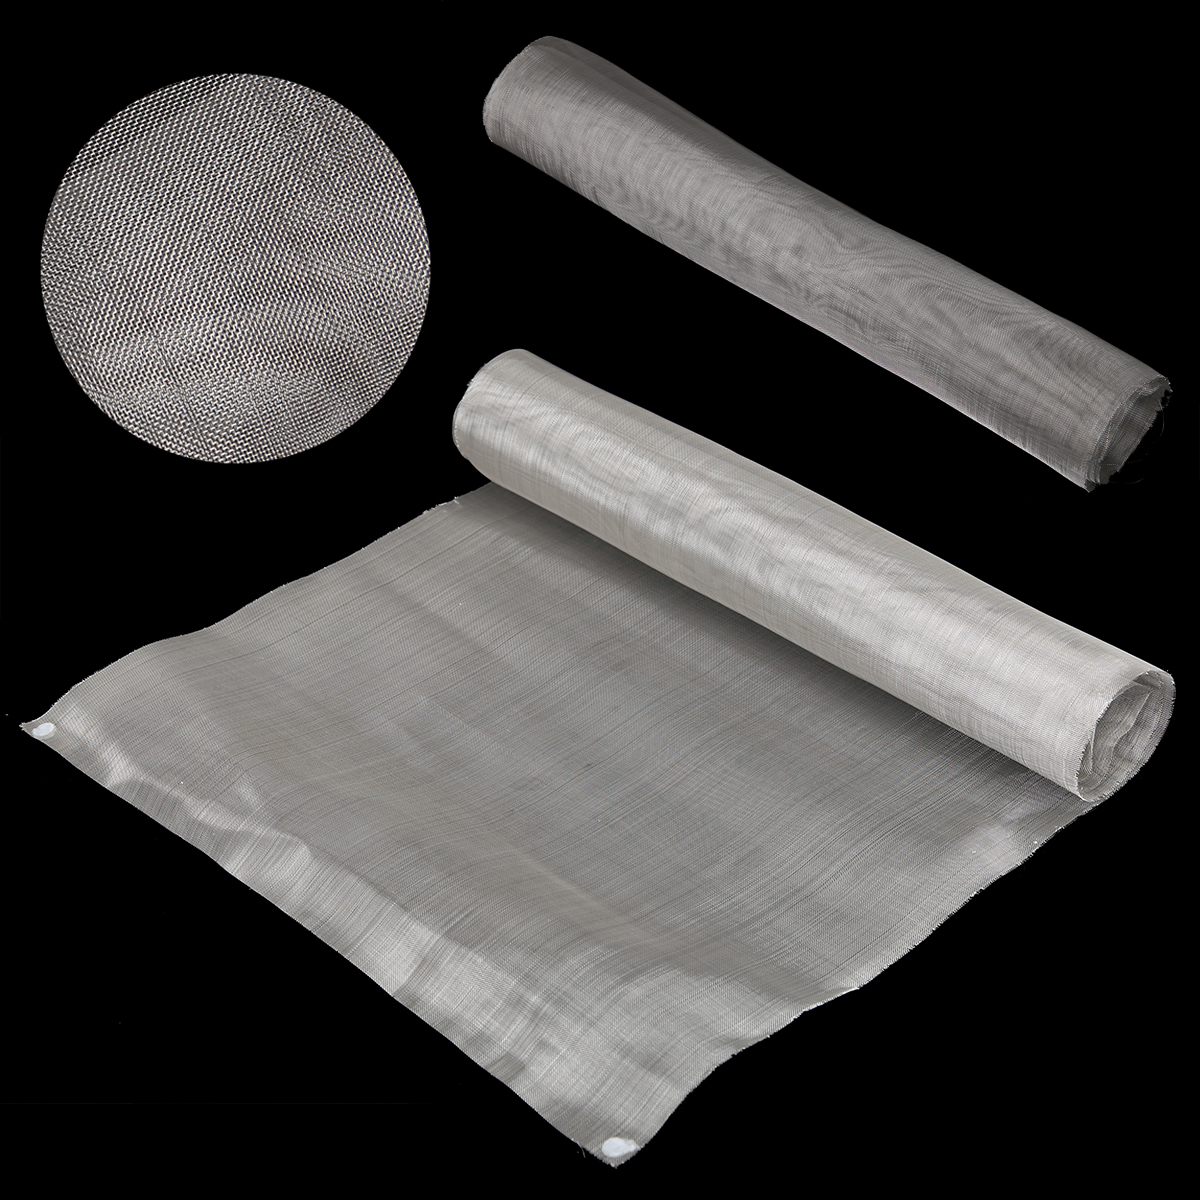 50 Mesh Filtration Mesh 304 Stainless Steel Filtration Woven Wire Cloth Screen 40 x 90cm Used For Oil/Water/Paint